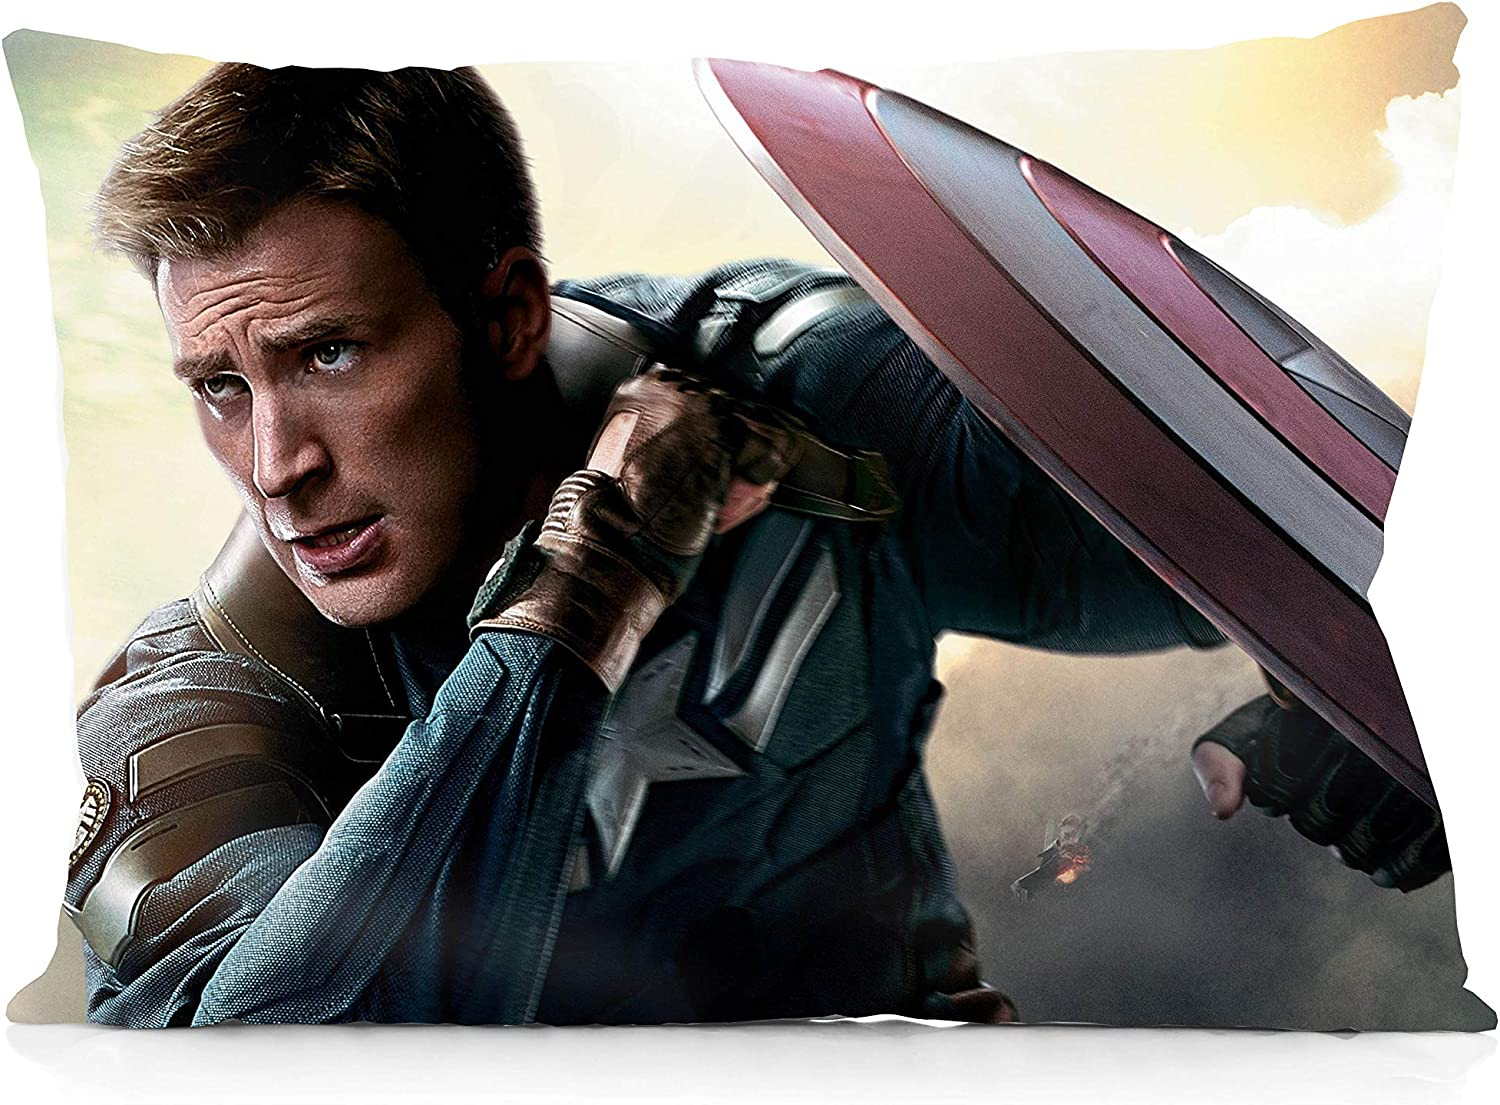 Bed Chris Evans Plush Pillow 23.6 Inch Soft Stuffed Plush Doll Portable Stress Relief Toy Same As Captain America Chris Evans Promote Sleep /& Increase Sense of Security for Sofa